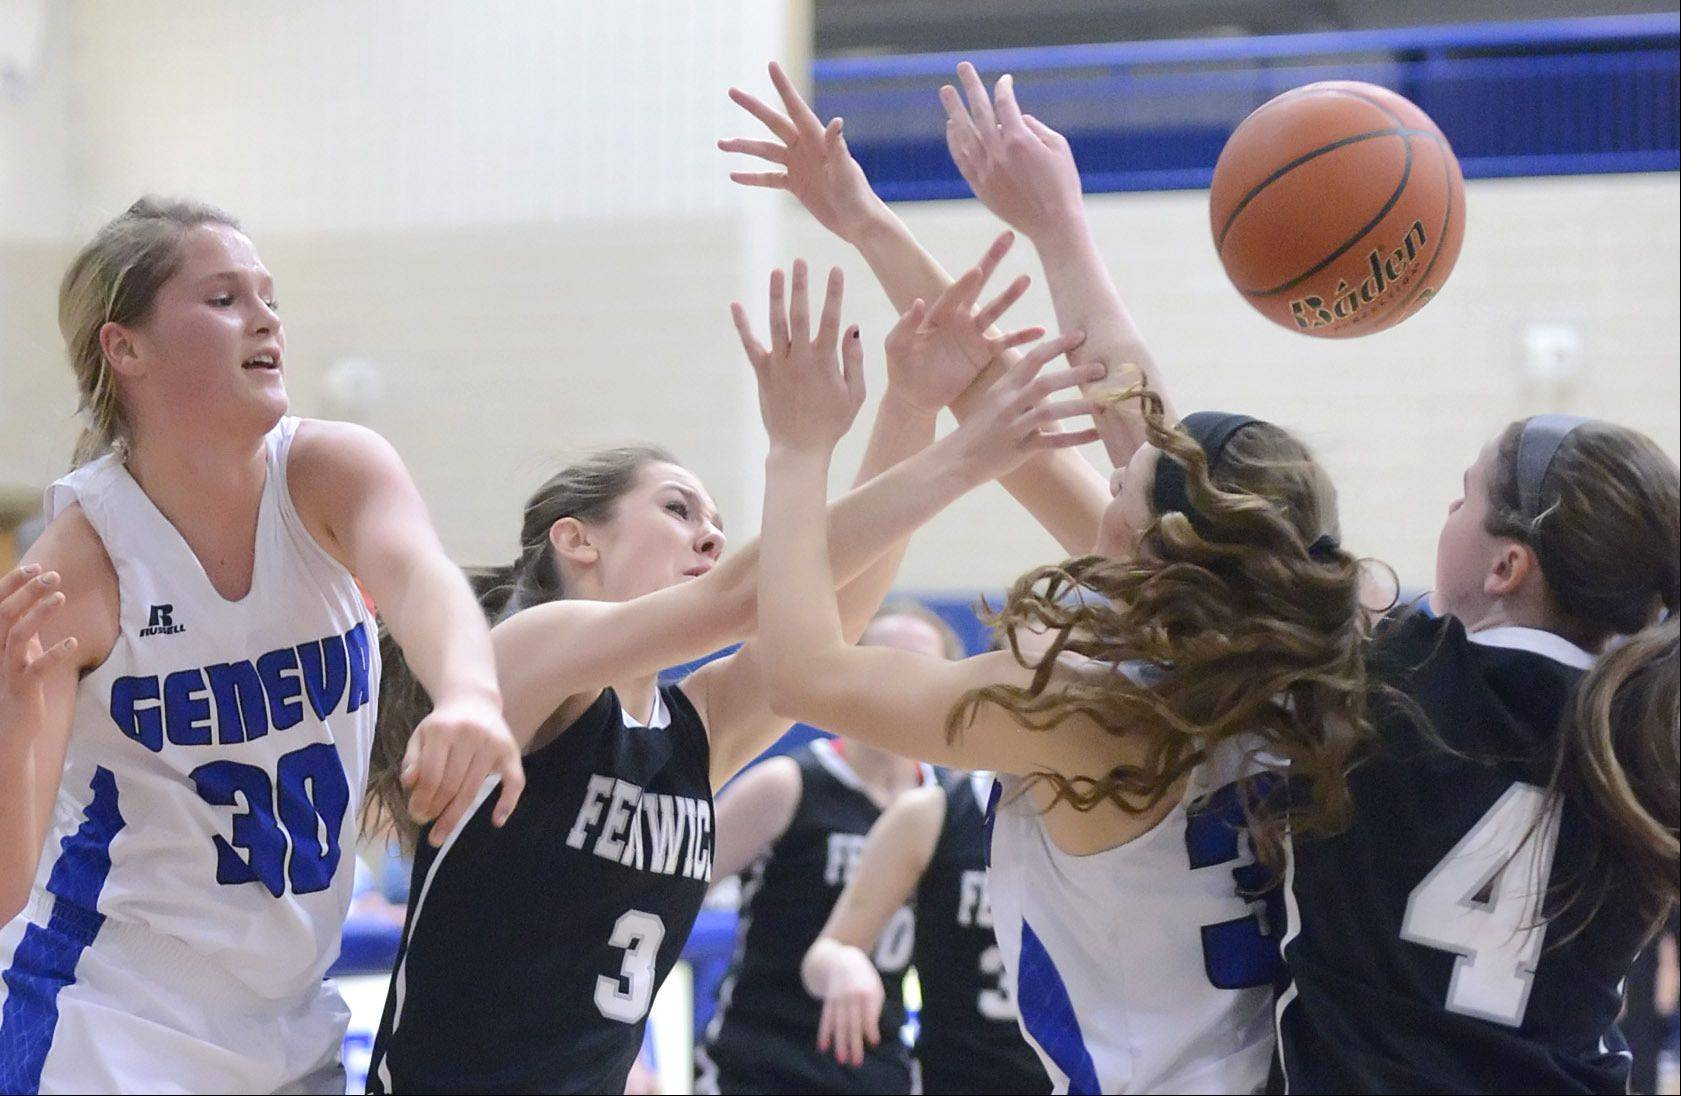 Geneva's Janie McCloughan and Madeline Dunn scramble for a loose ball with Fenwick's Katie Dvorak and Megan Hussey in the second quarter.